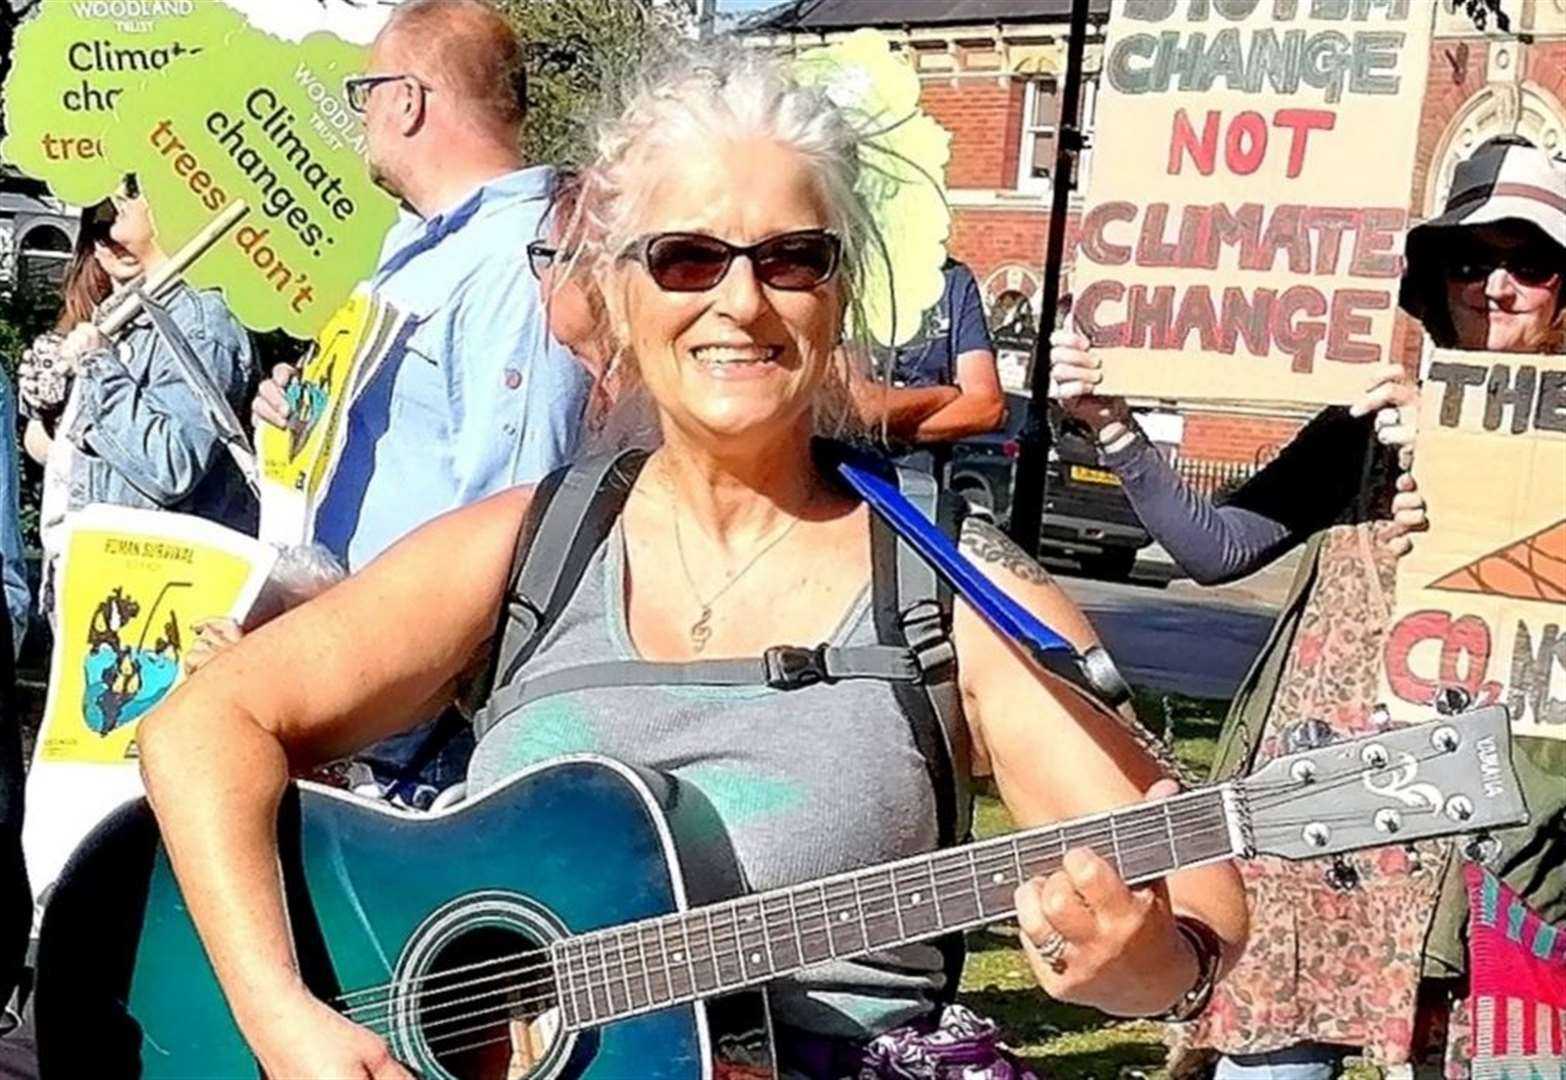 Climate protesters gather in Grantham